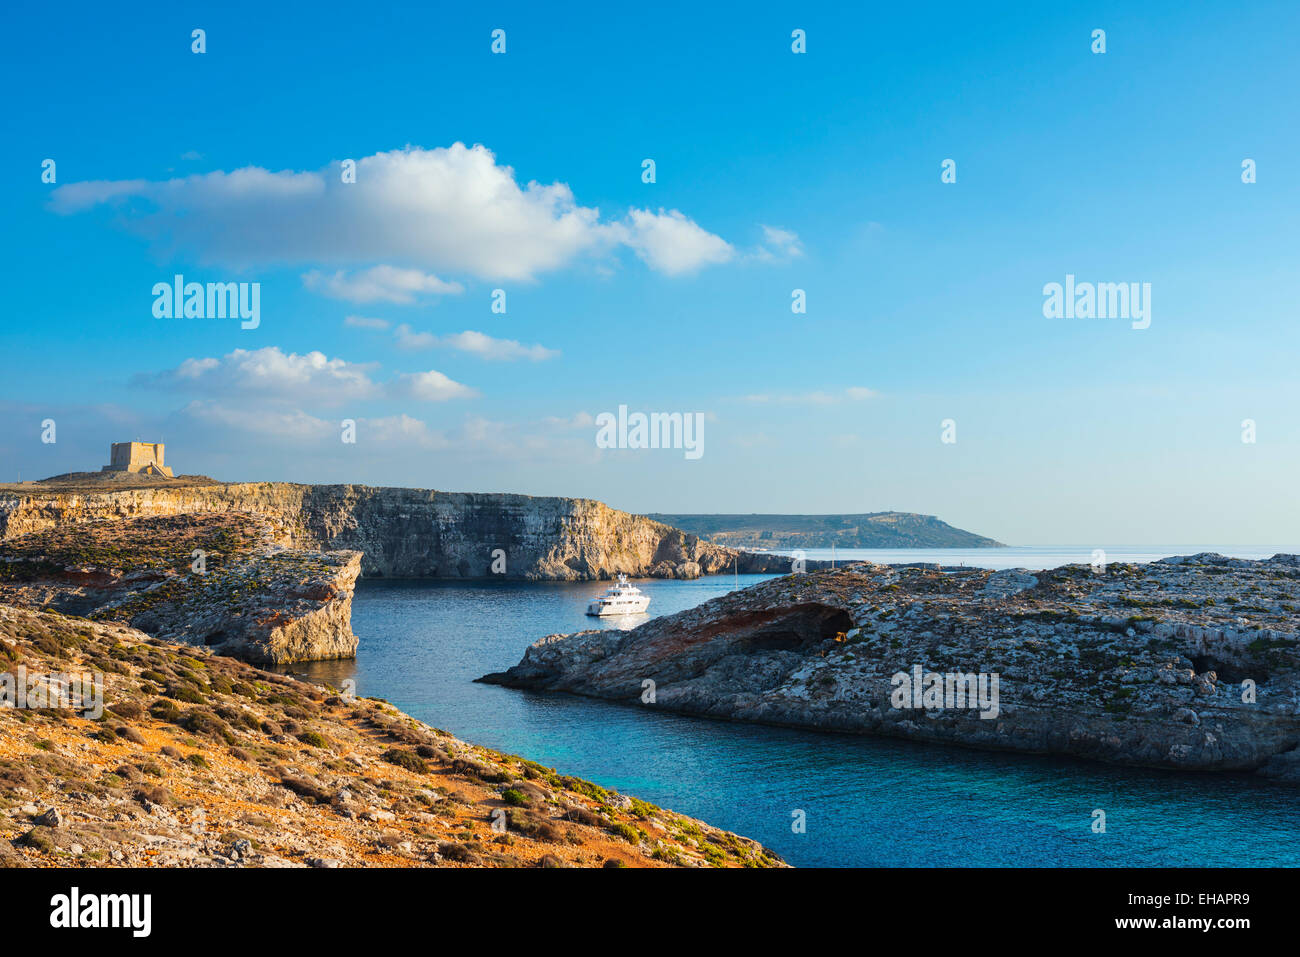 Mediterranean Europe, Malta, Comino island, cliff top watchtower - Stock Image